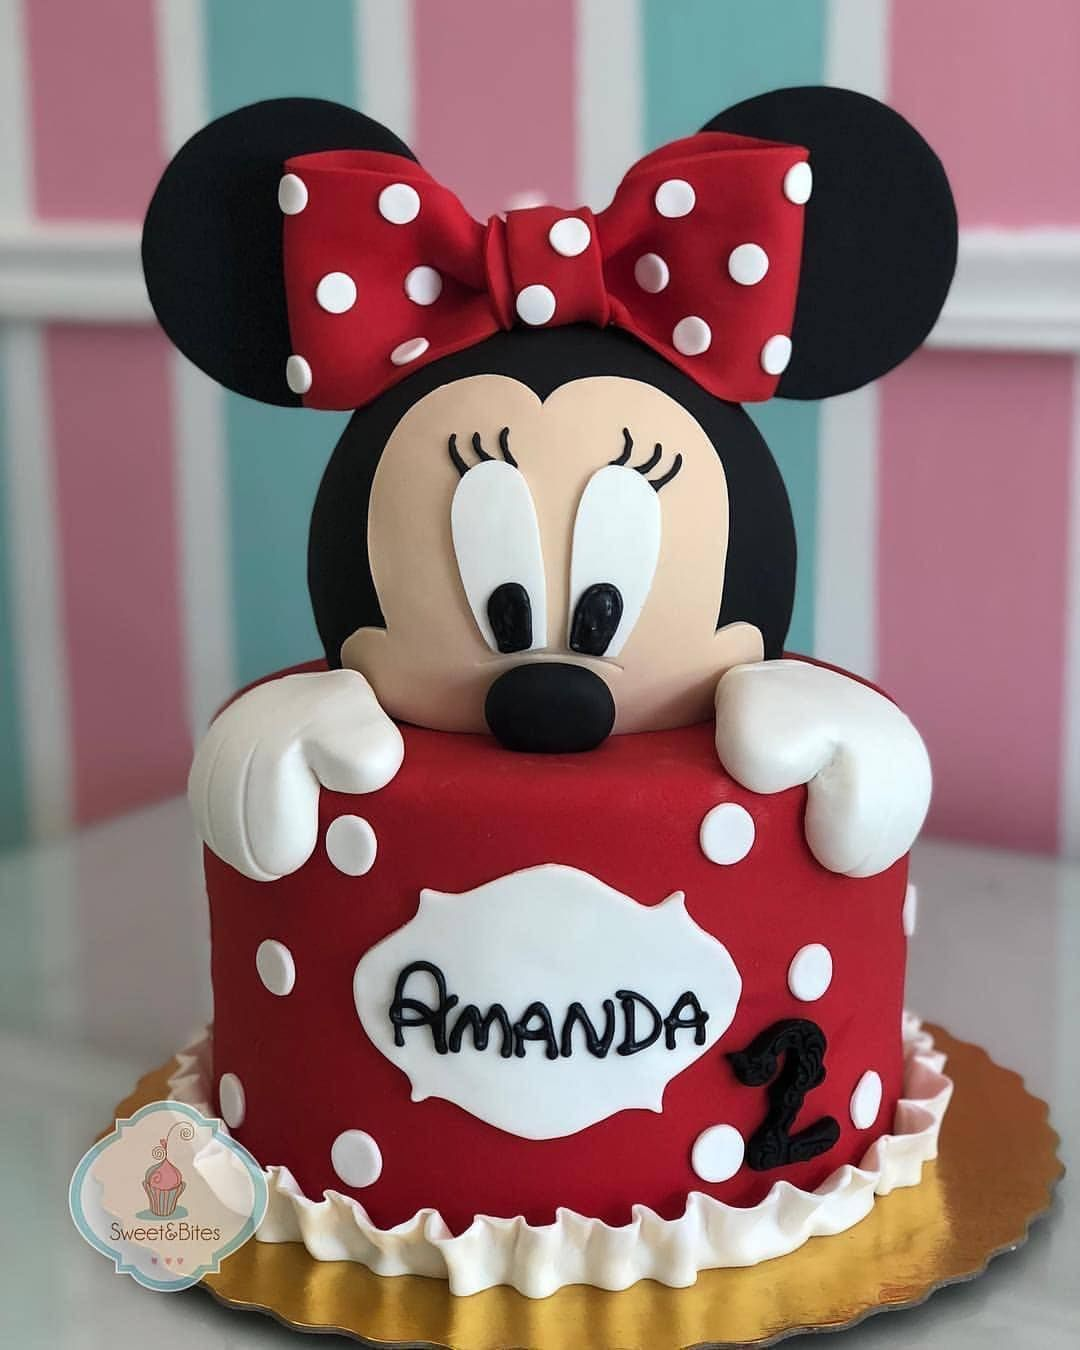 Bolo Minnie Lindo Por Sweetnbites Via Festejarcomamor Kikidsparty Minnie Mickey Mouse Birthday Cake Minnie Mouse Birthday Cakes Minnie Mouse Cake